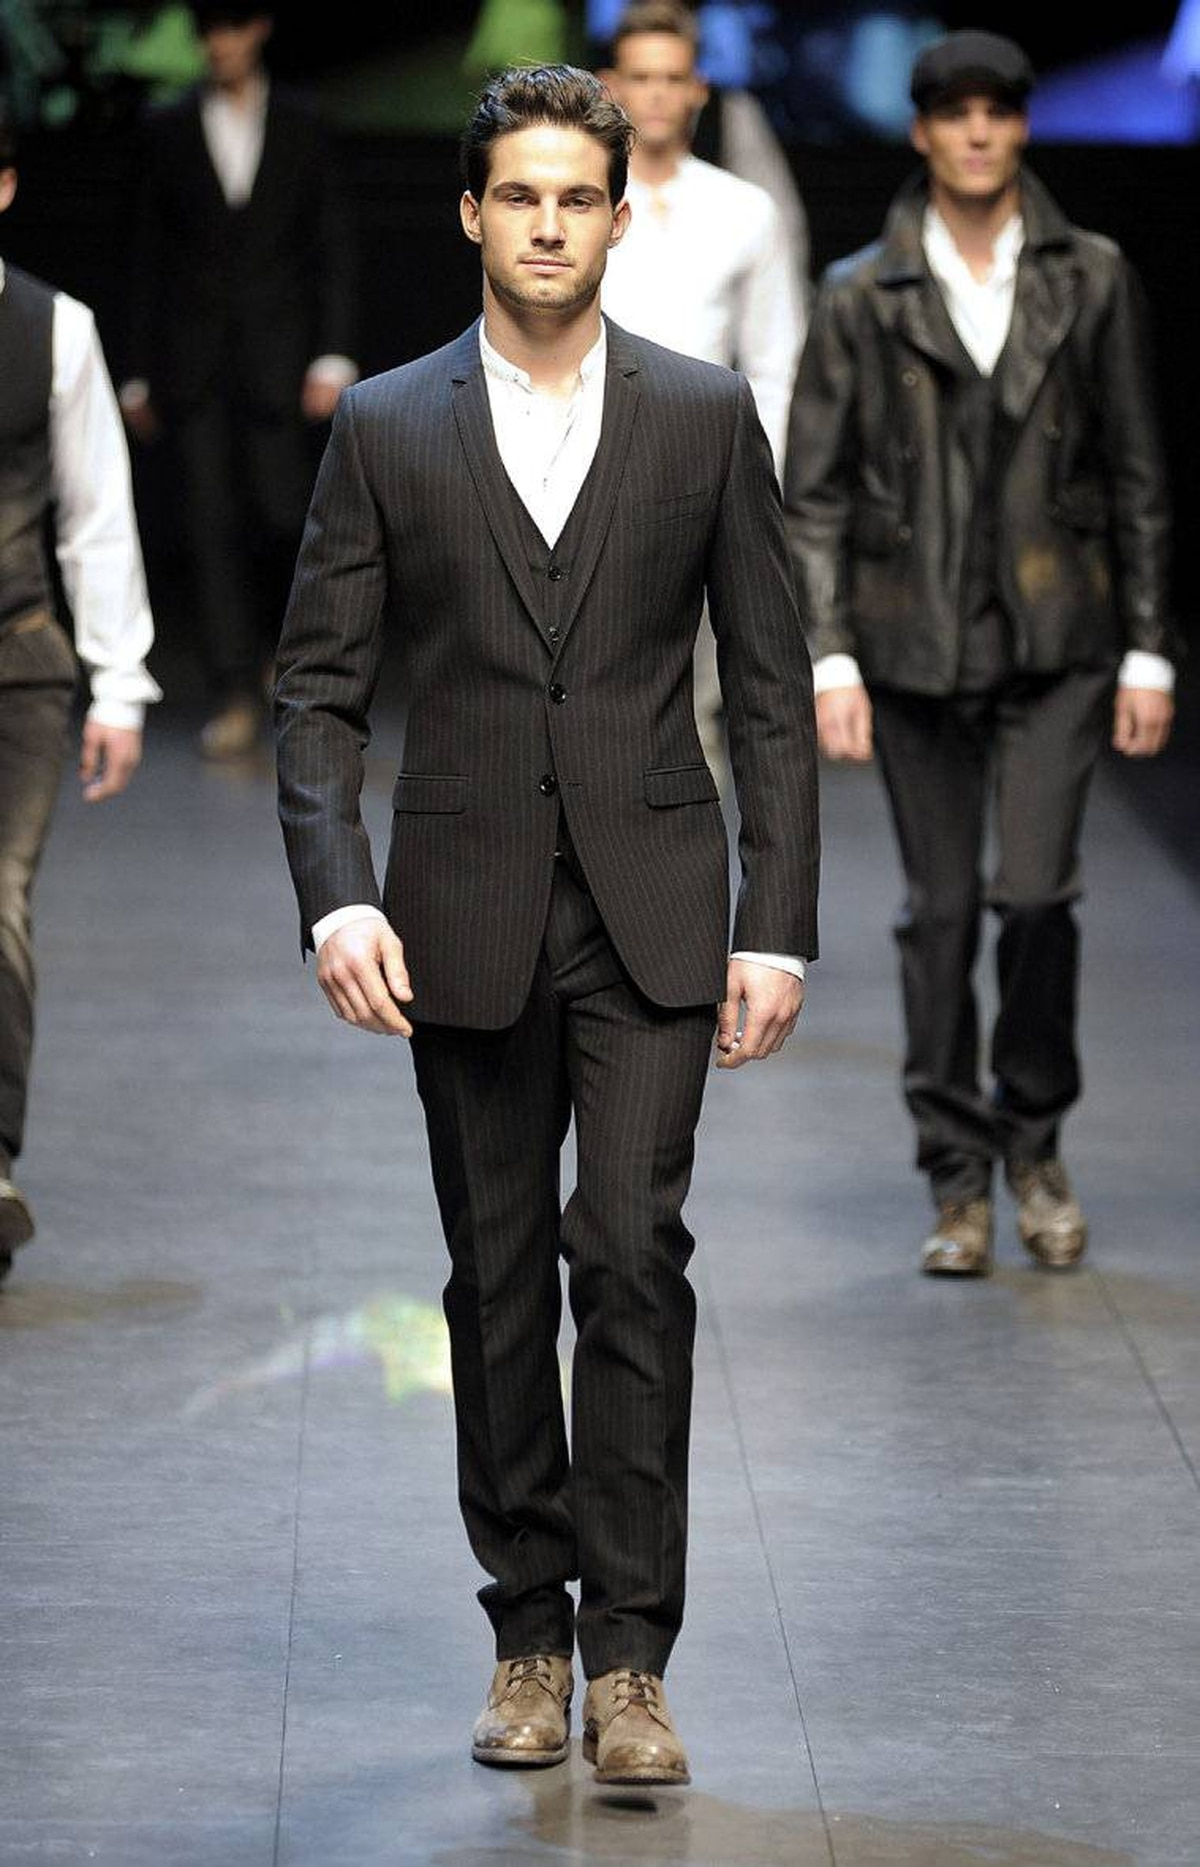 Three-piece suit on the runway